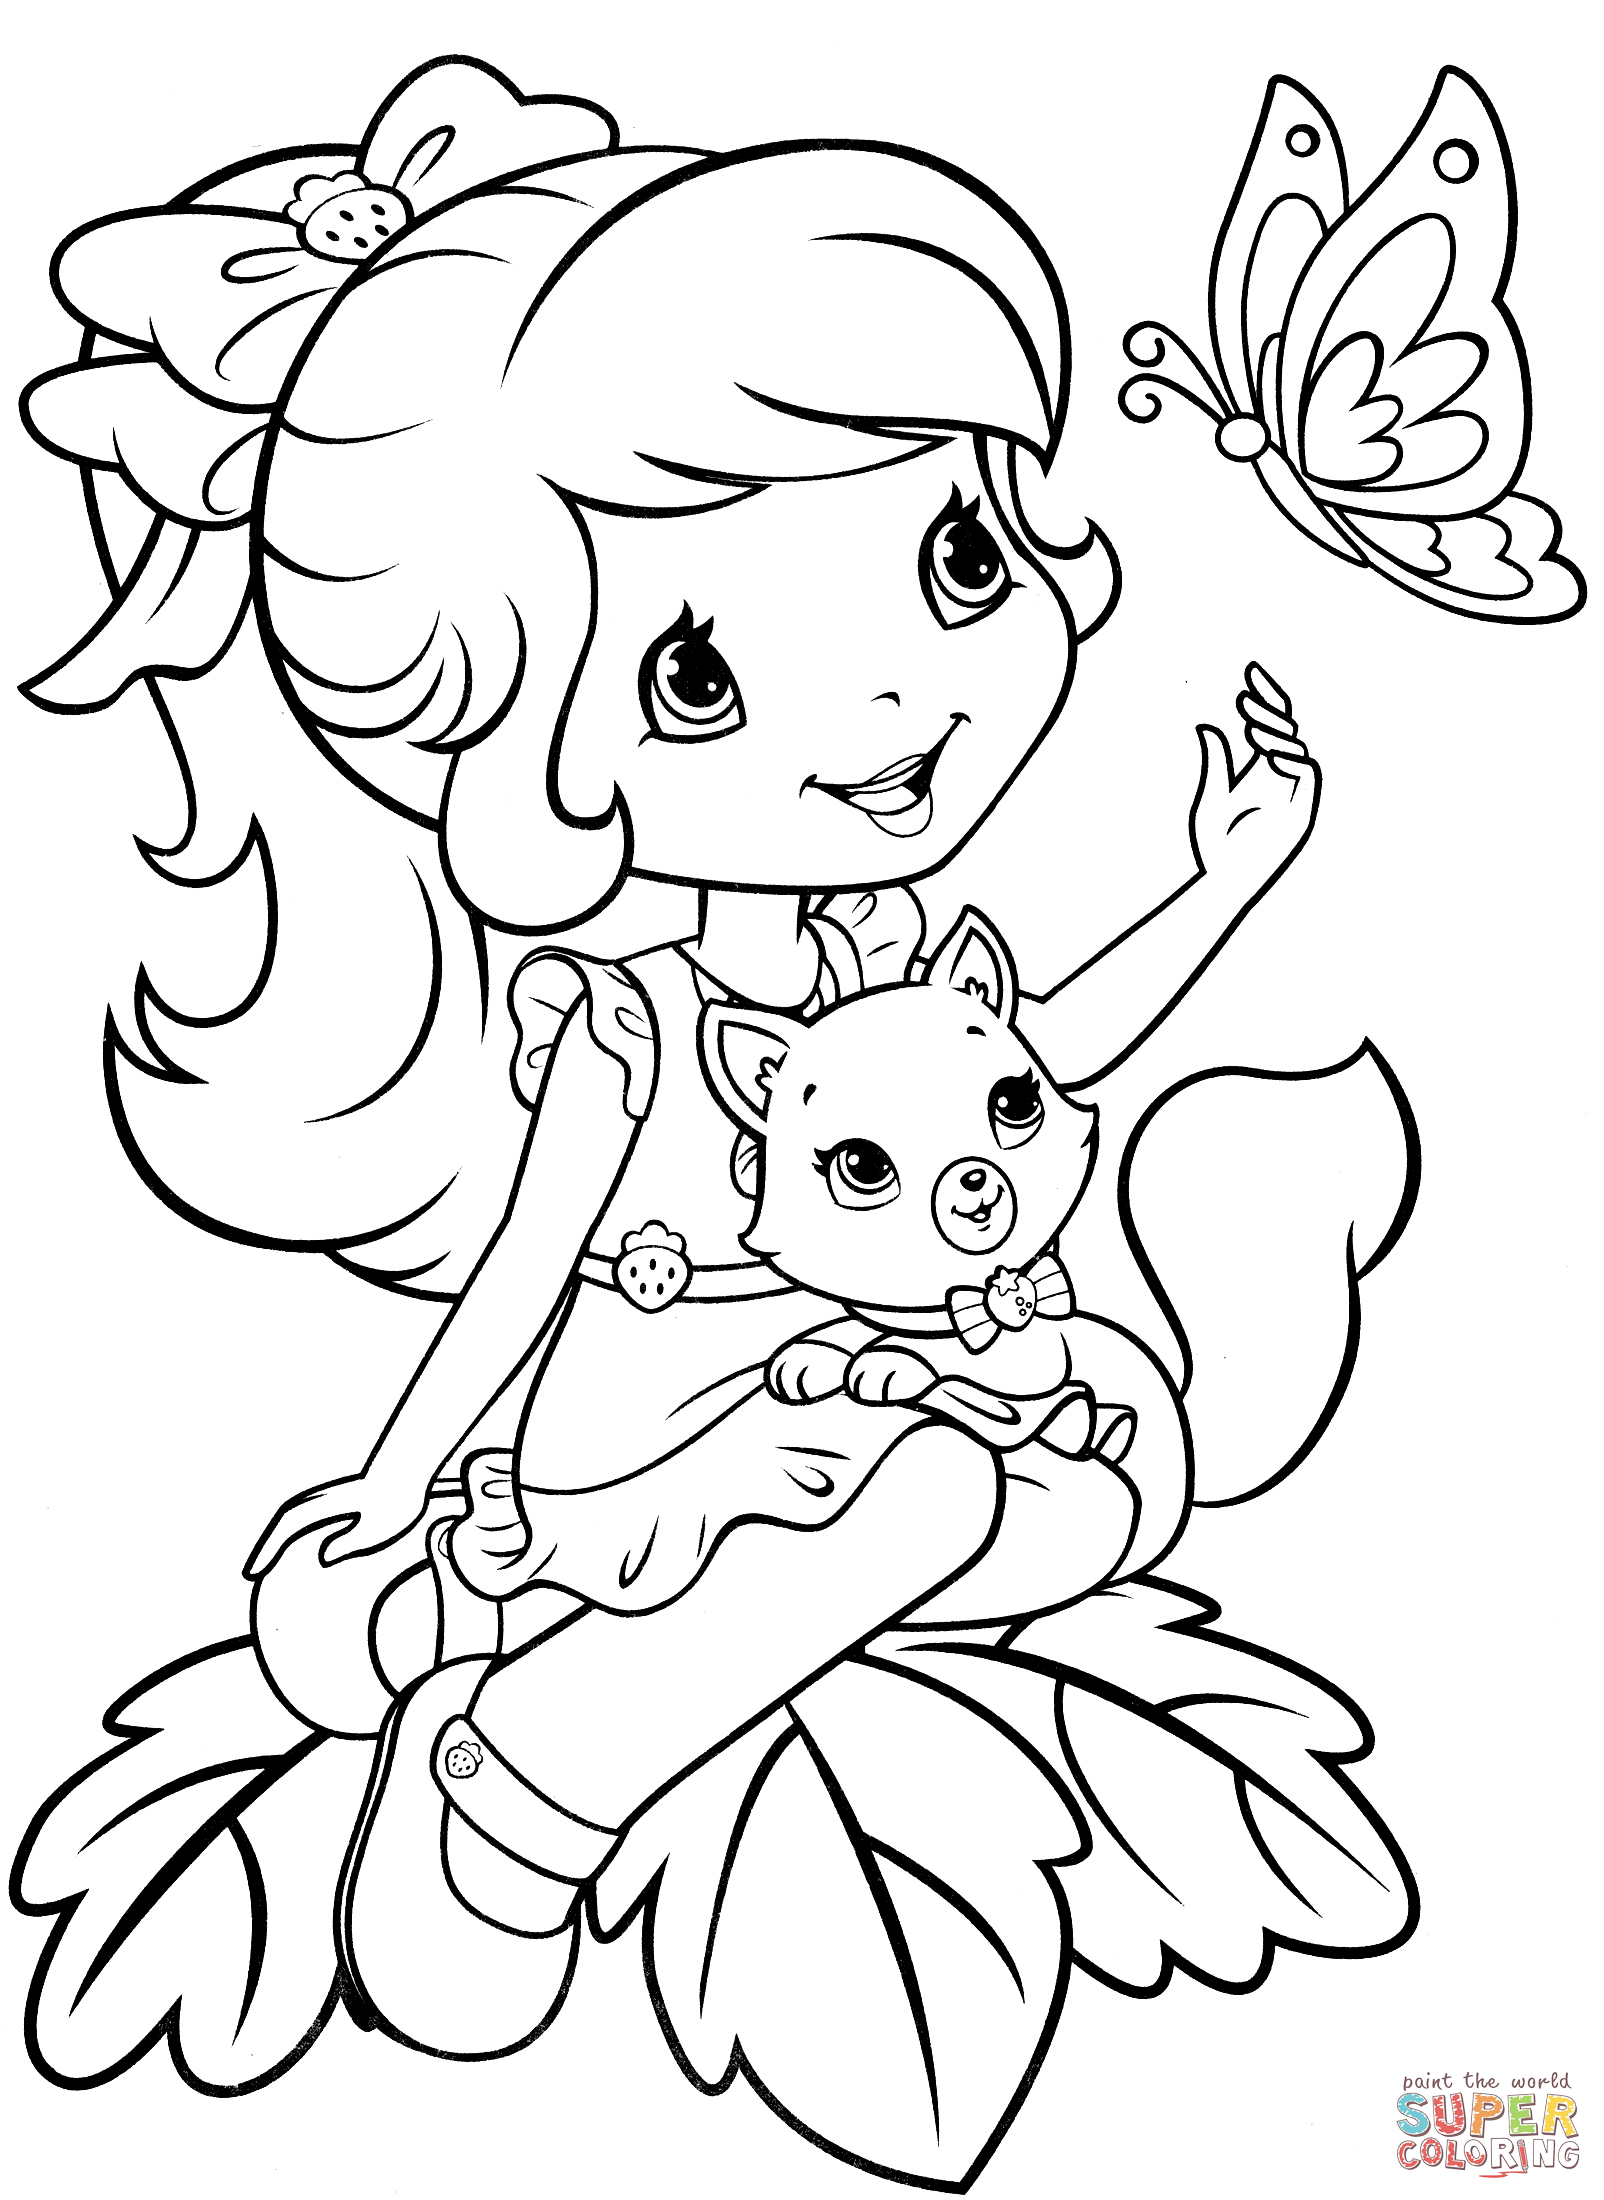 Strawberry Shortcake Coloring Pages | Free Coloring Pages - Strawberry Shortcake Coloring Pages Free Printable